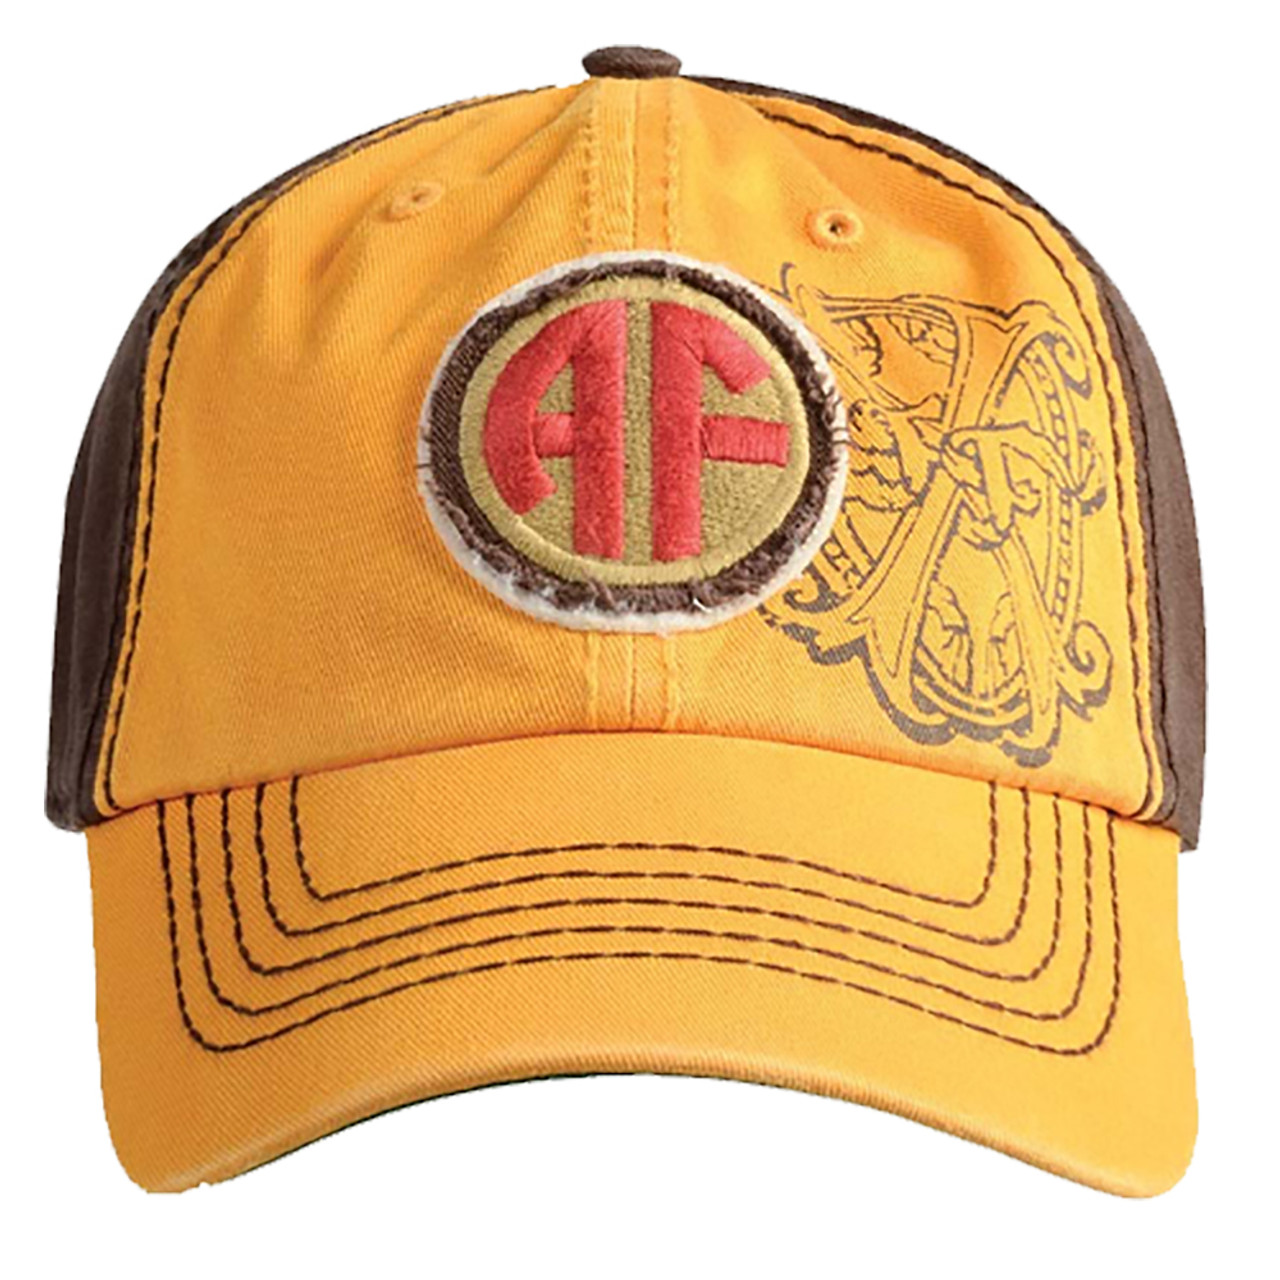 ed2c0ceb747 ARTURO FUENTE AF OPUS X LOGO BASEBALL HAT - GOLD AND BROWN  63063.1529821282.jpg c 2 imbypass on